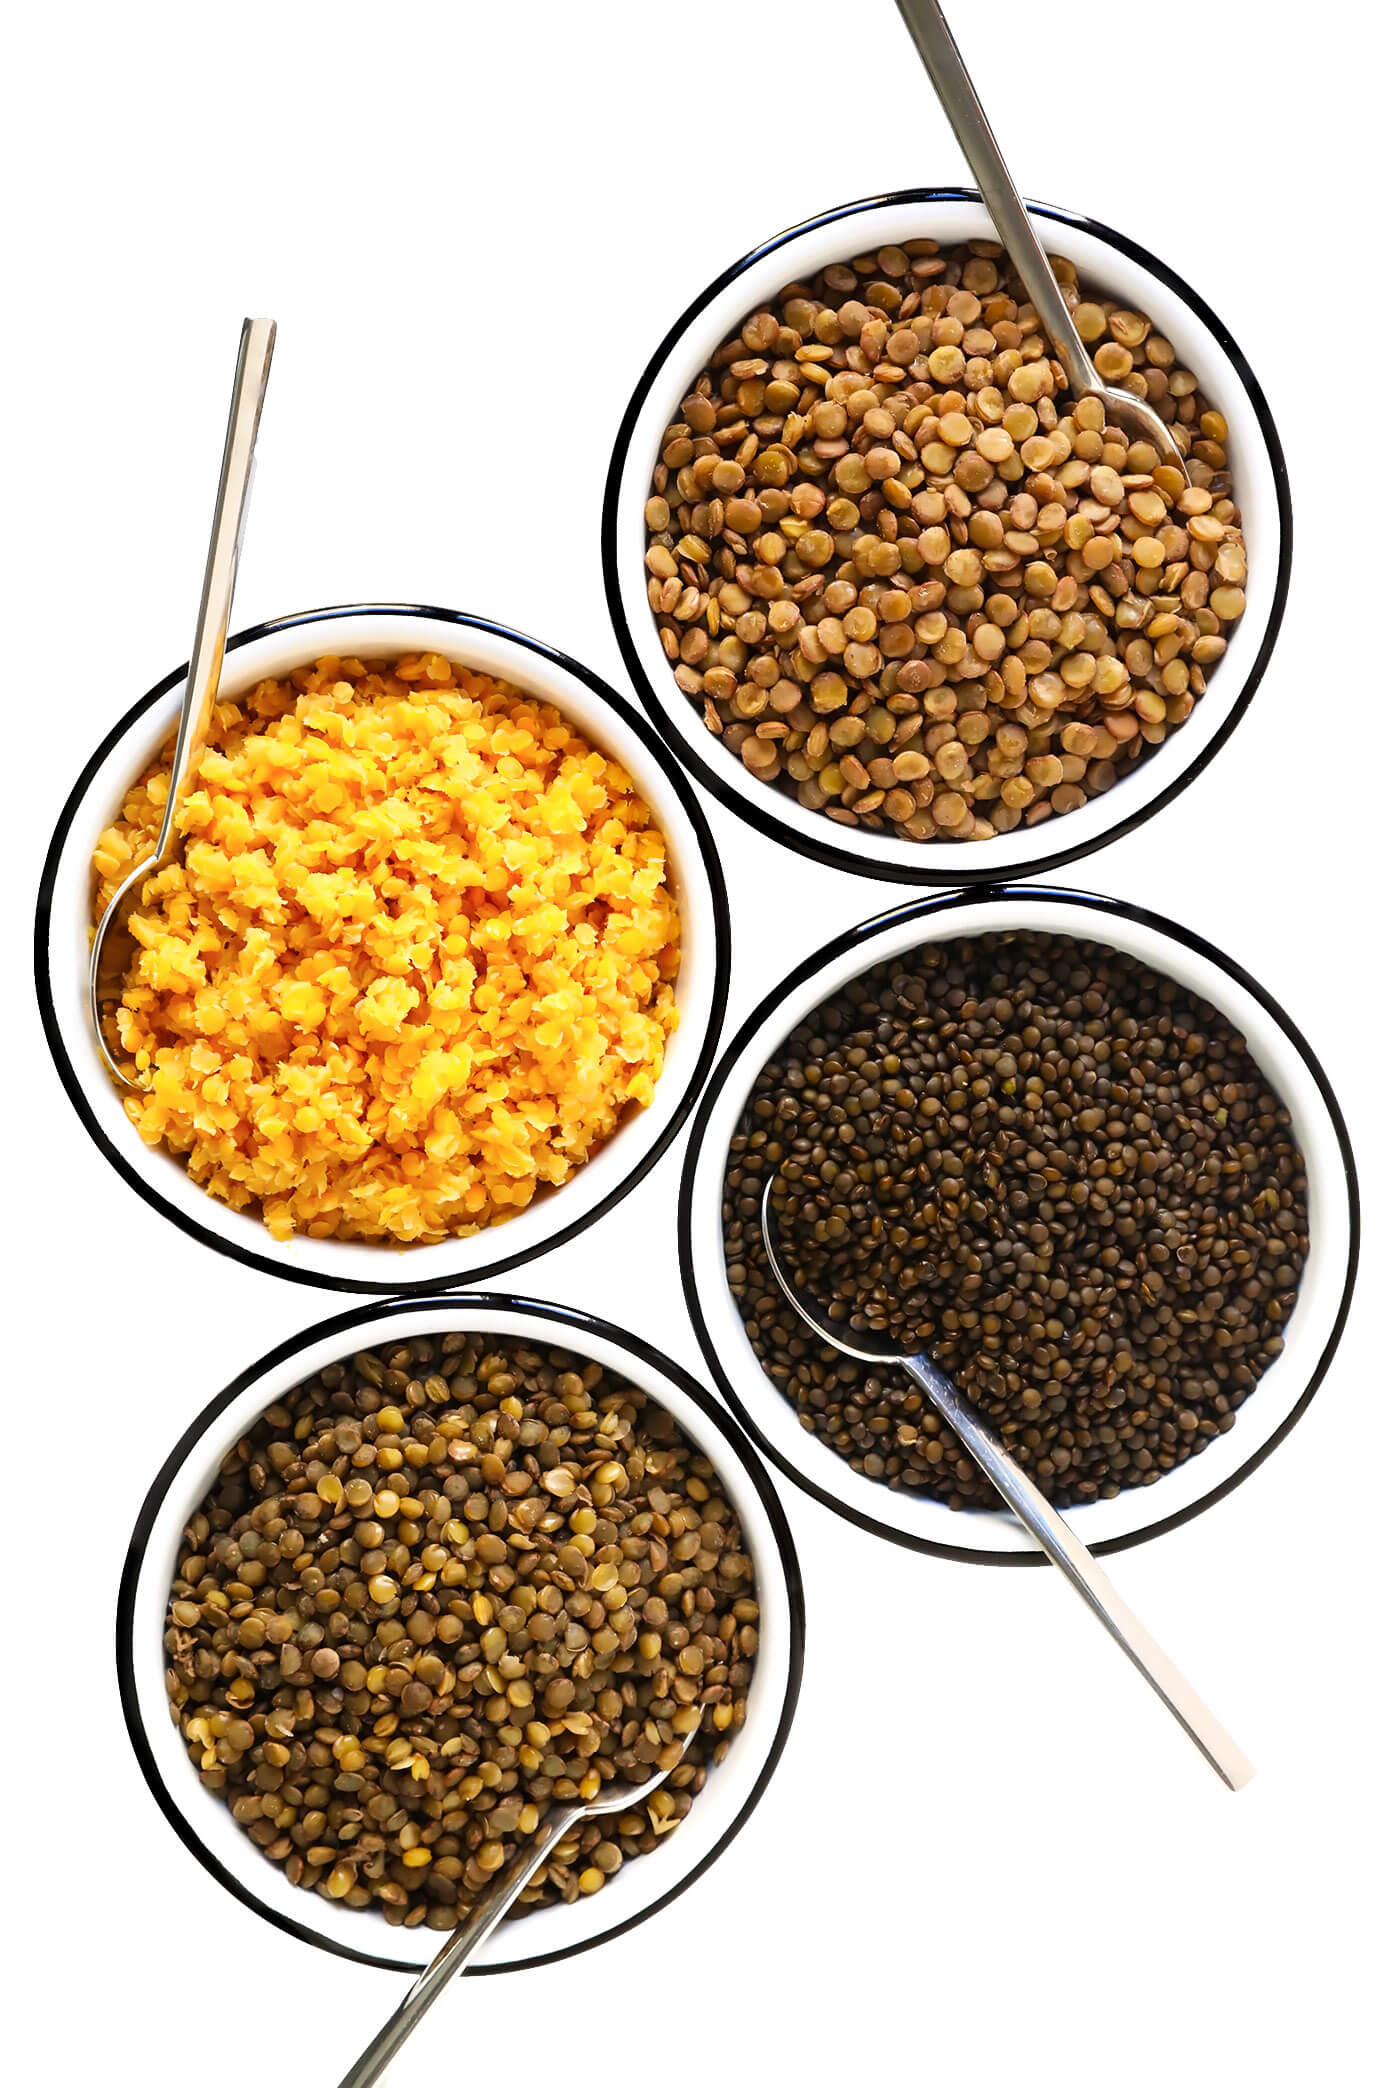 How To Cook Lentils (Red, Black, Brown, Green, or French Lentils)